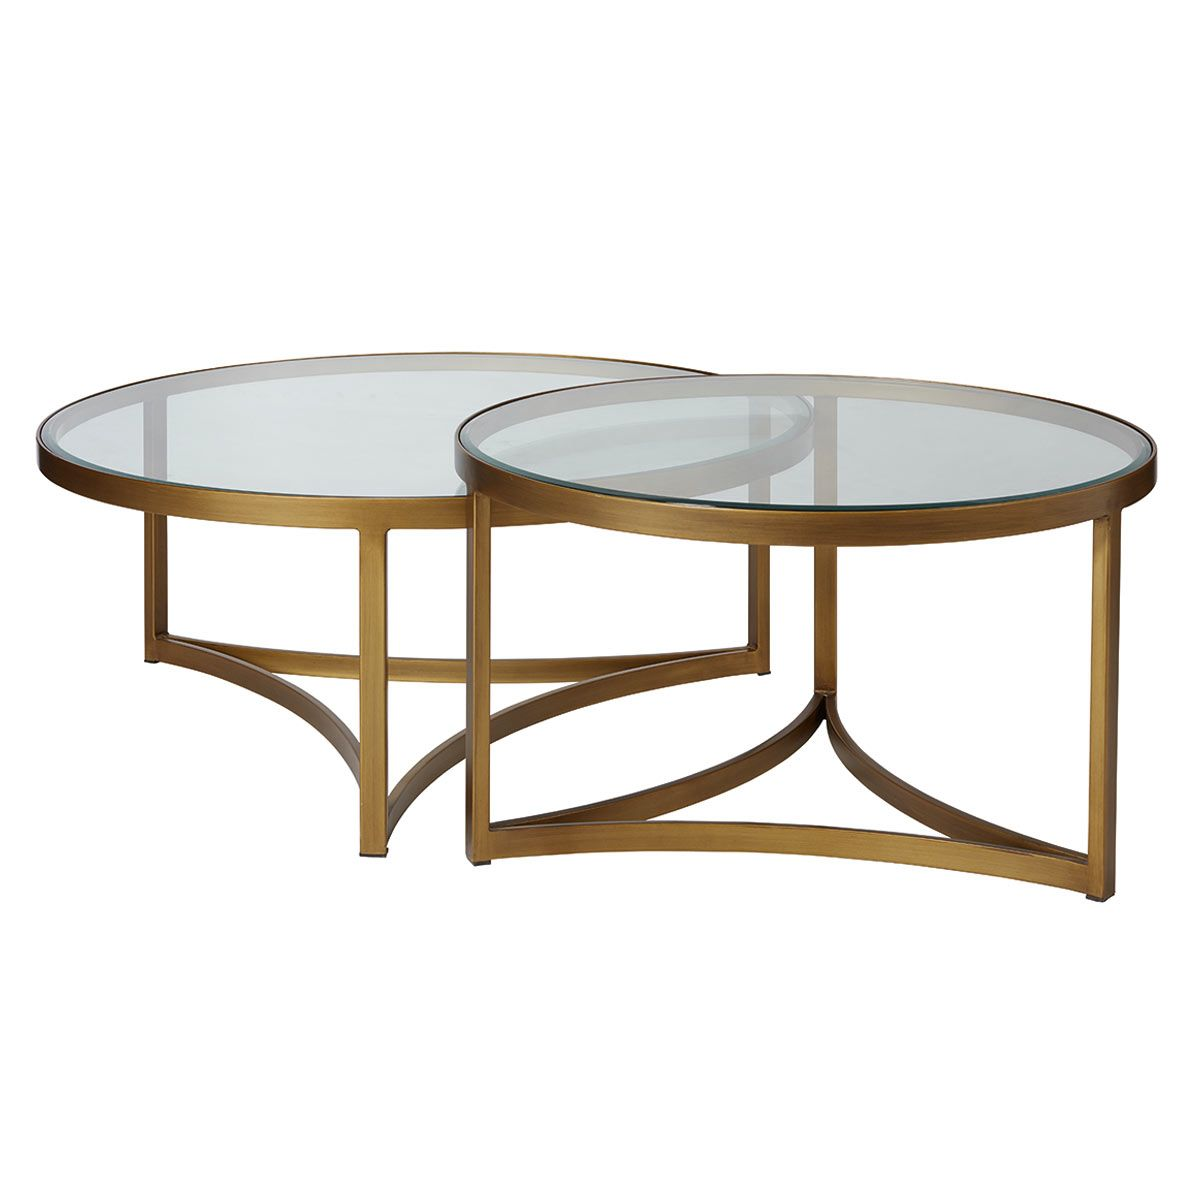 Set Of Two Opplyst Tables Coffee Table Coffee Table Design Coffee Table Wood [ 1200 x 1200 Pixel ]